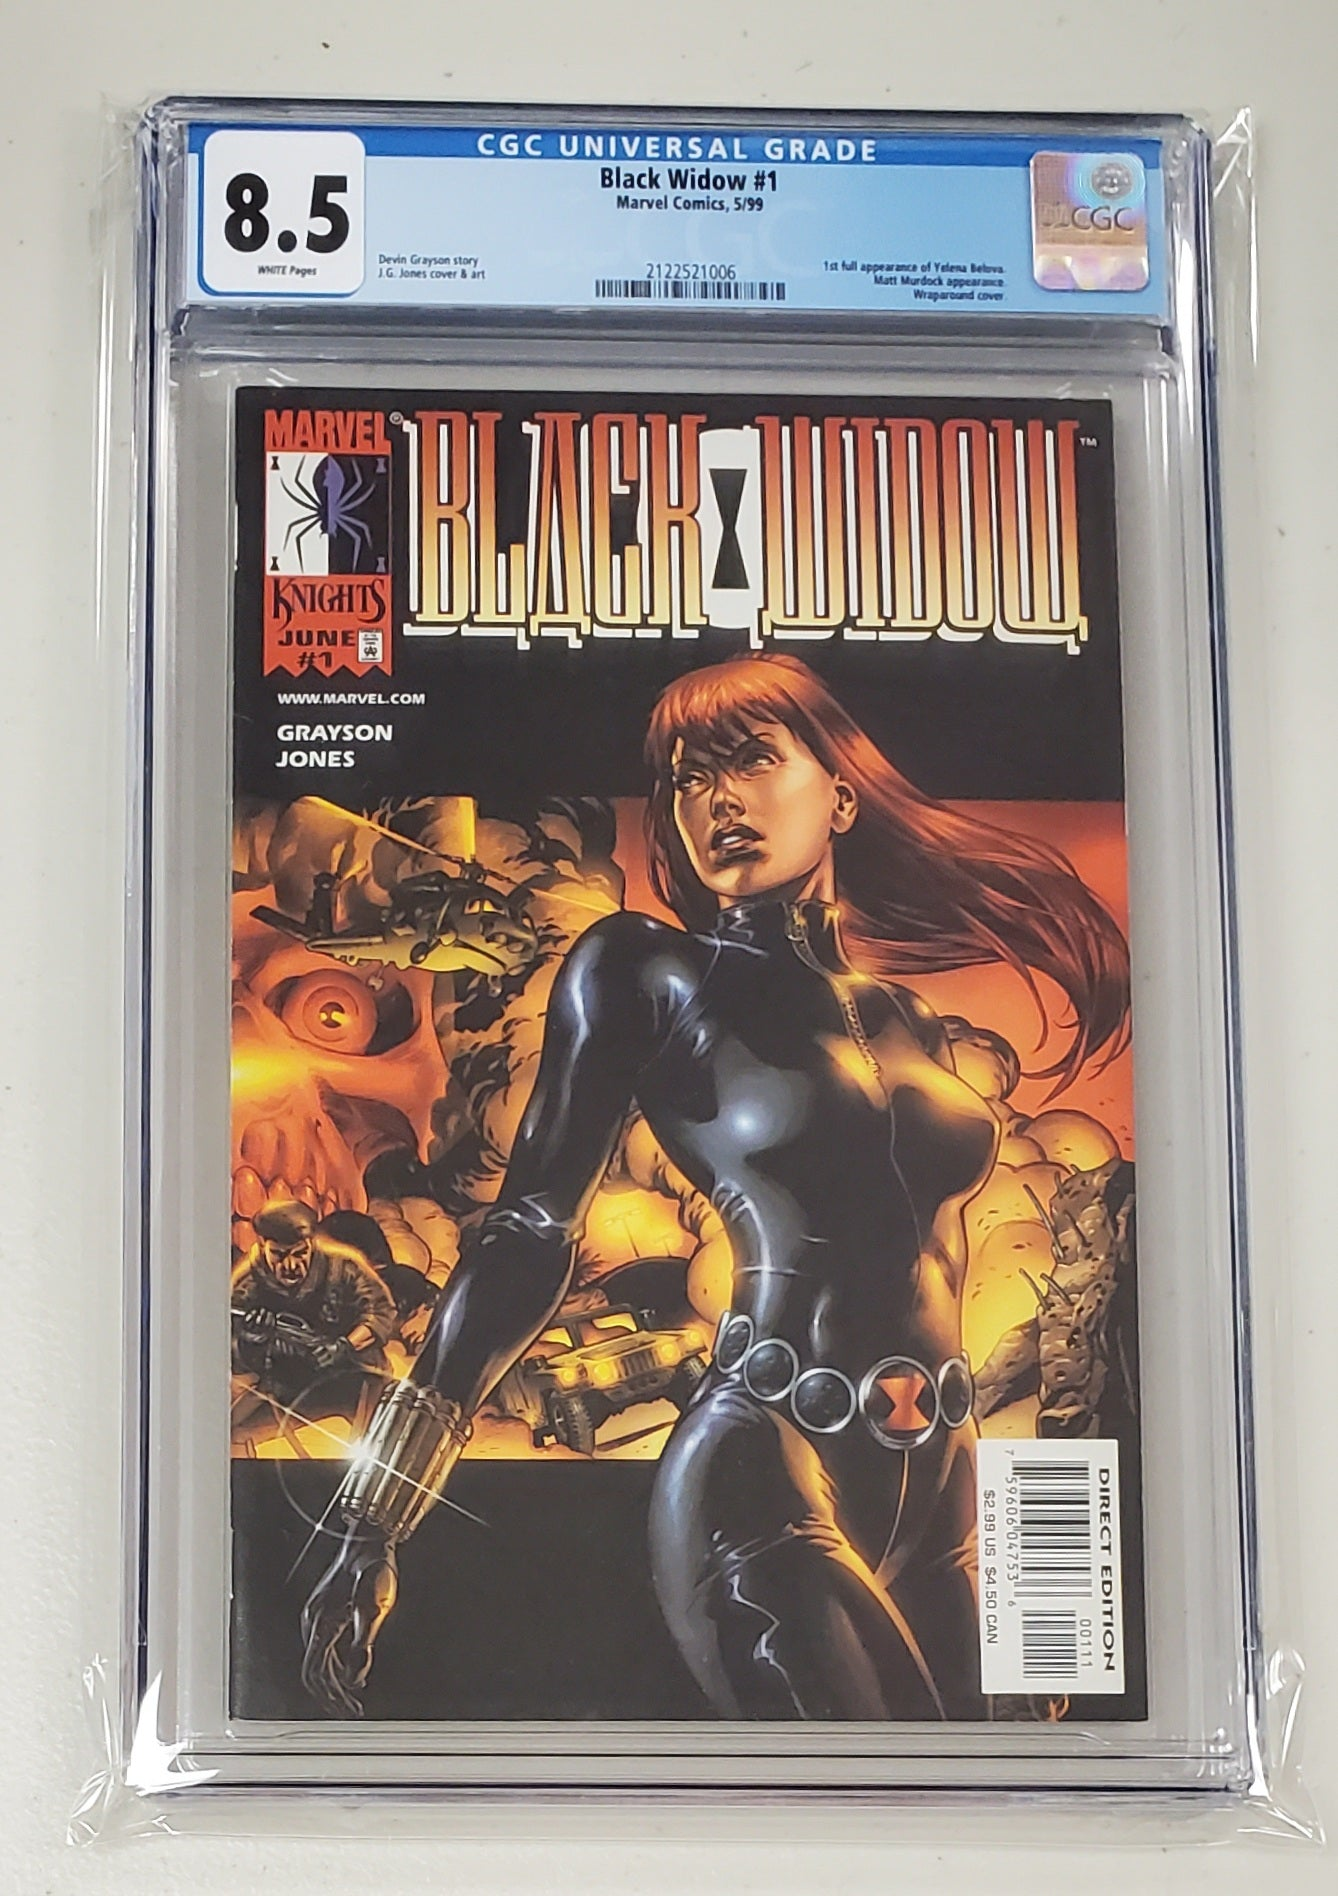 8.5 CGC BLACK WIDOW #1 JG JONES (1ST FULL APP YELENA BELOVA) 1999